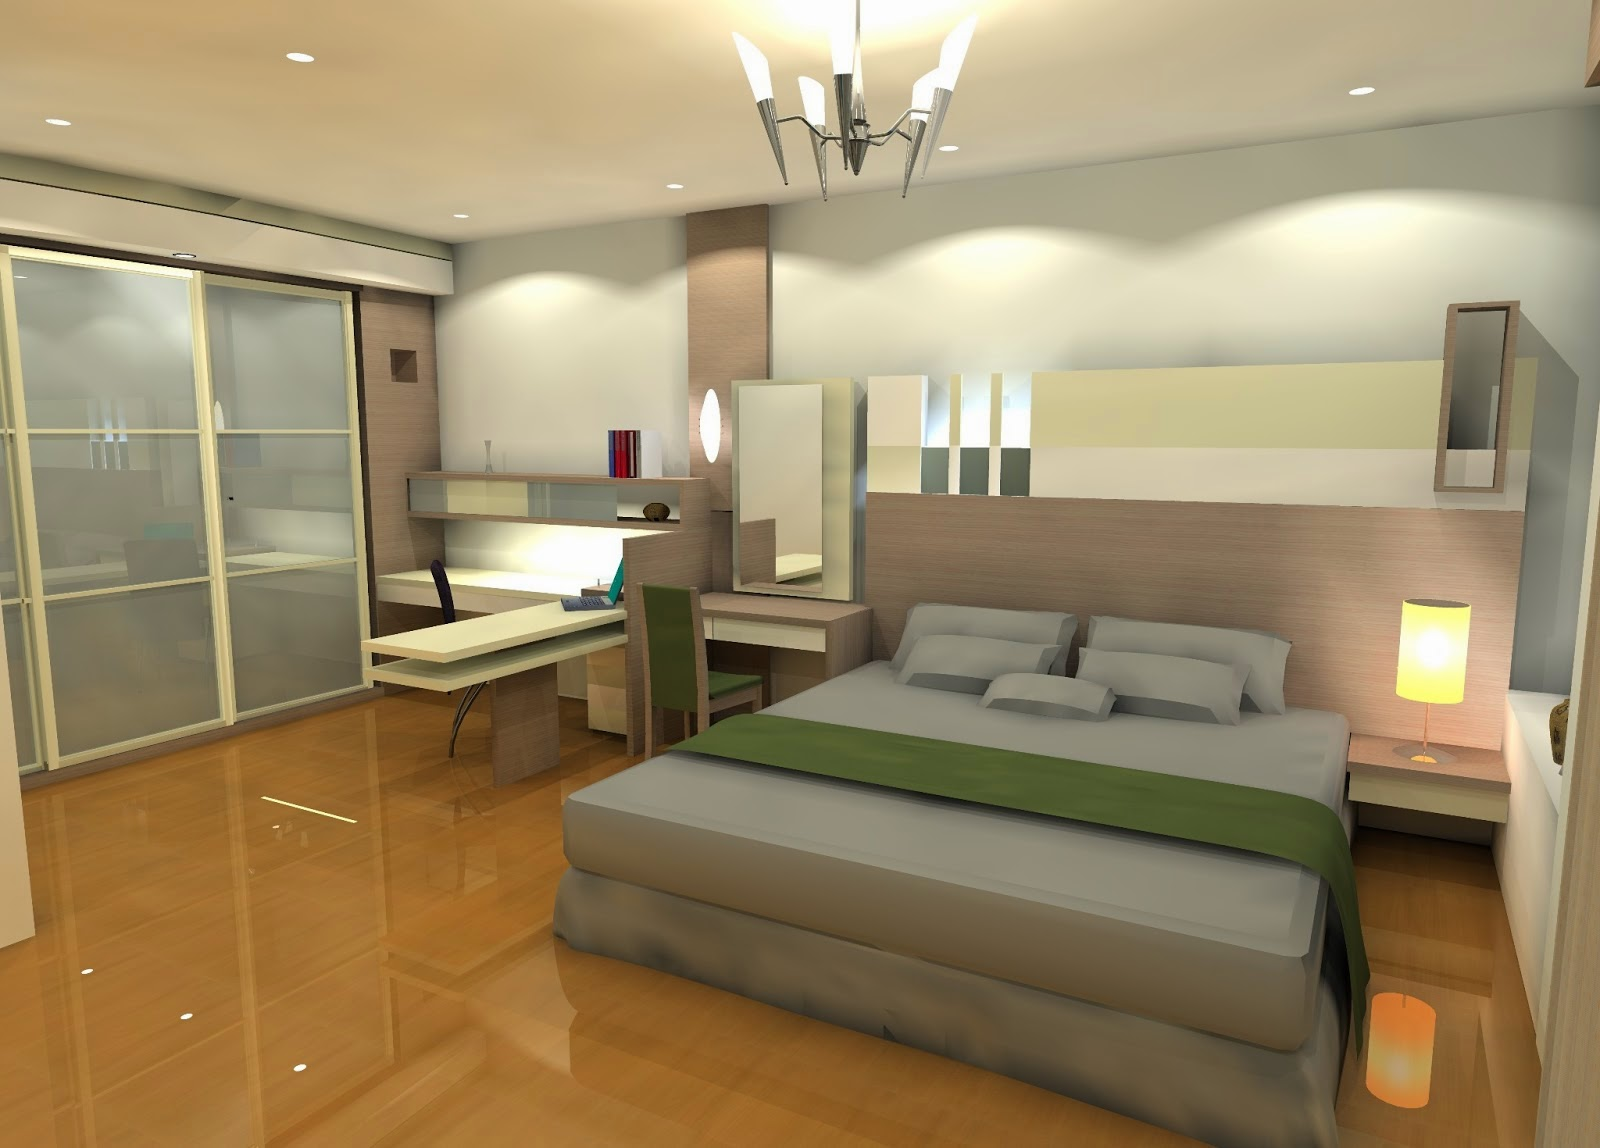 Modern bedroom interior design 2015 exclusive home for Modern home design 2015